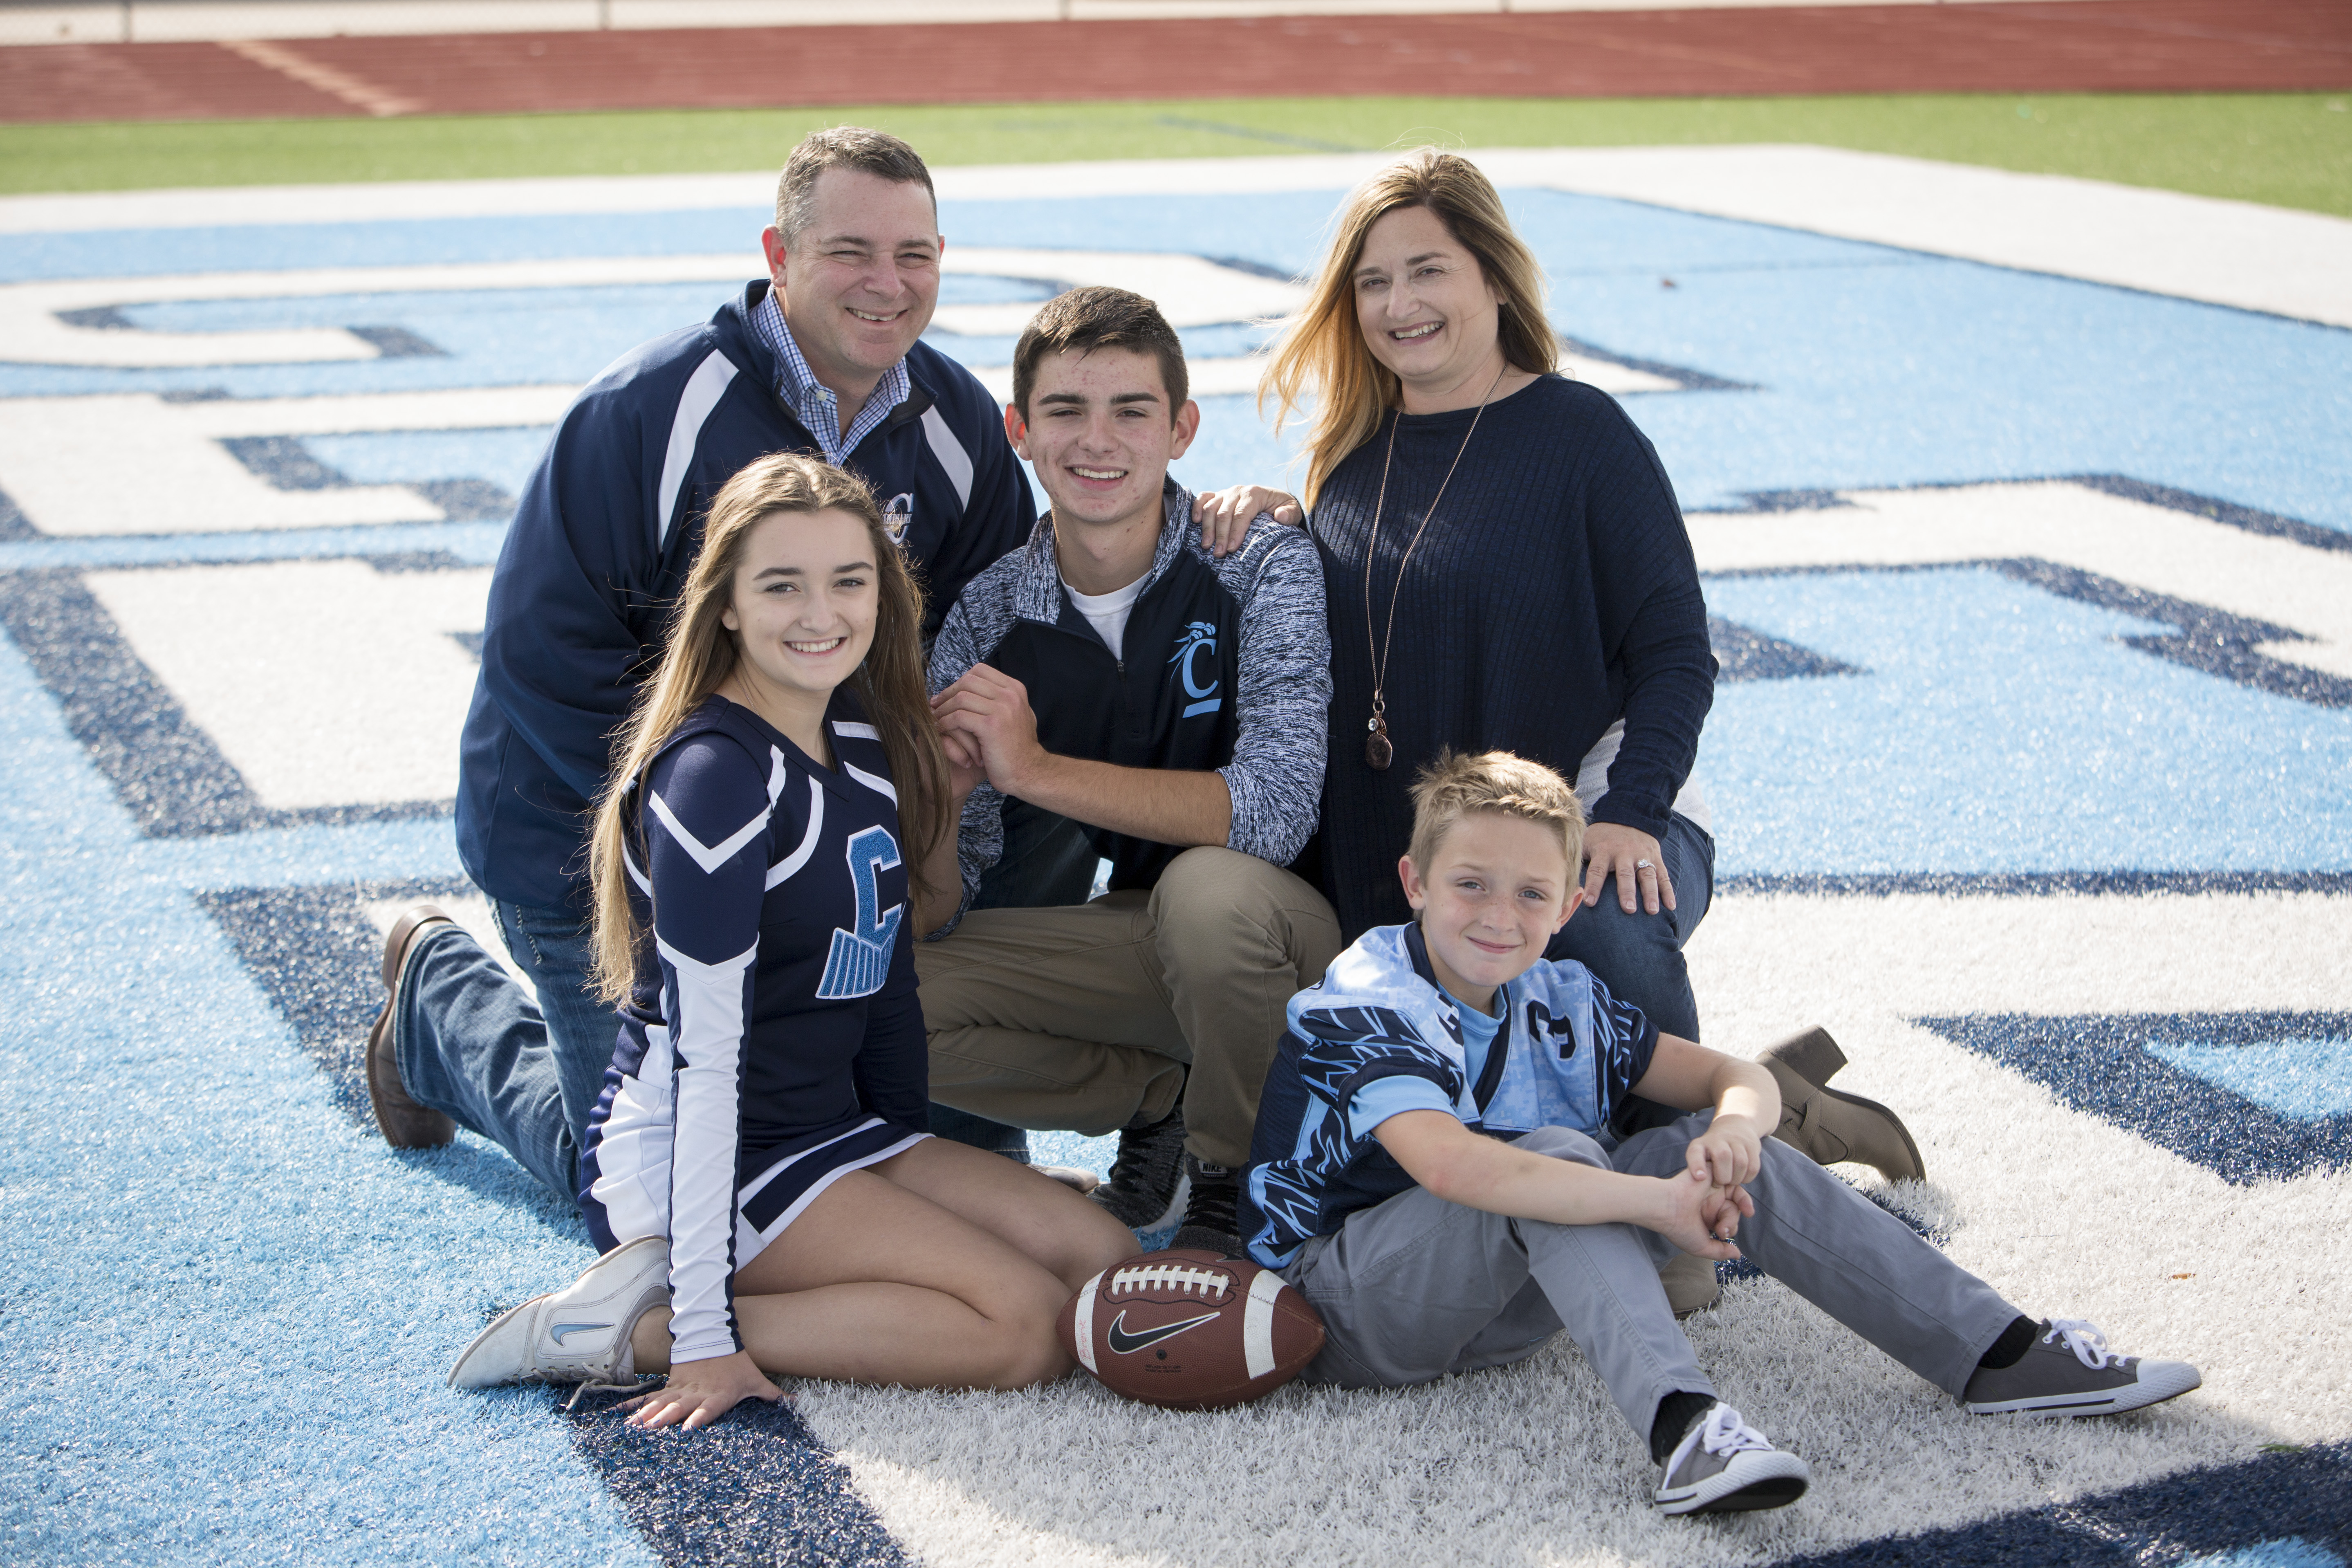 Family Sports Picture